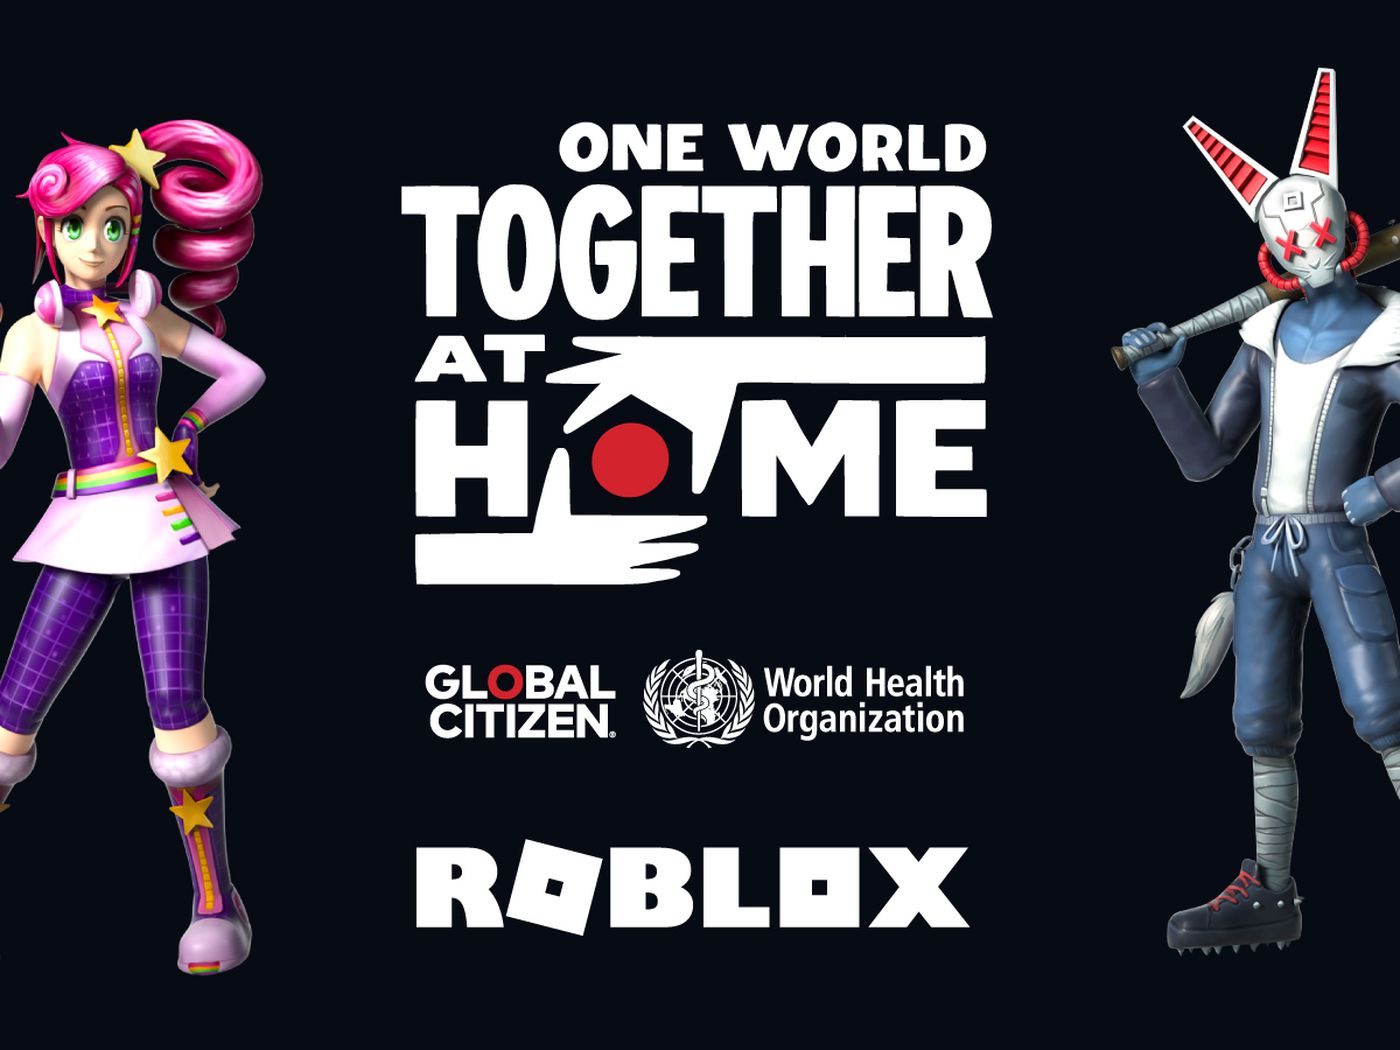 Movie Theater Date Roblox Roblox To Stream The One World Together At Home Benefit Concert Inside A Virtual Theater The Verge